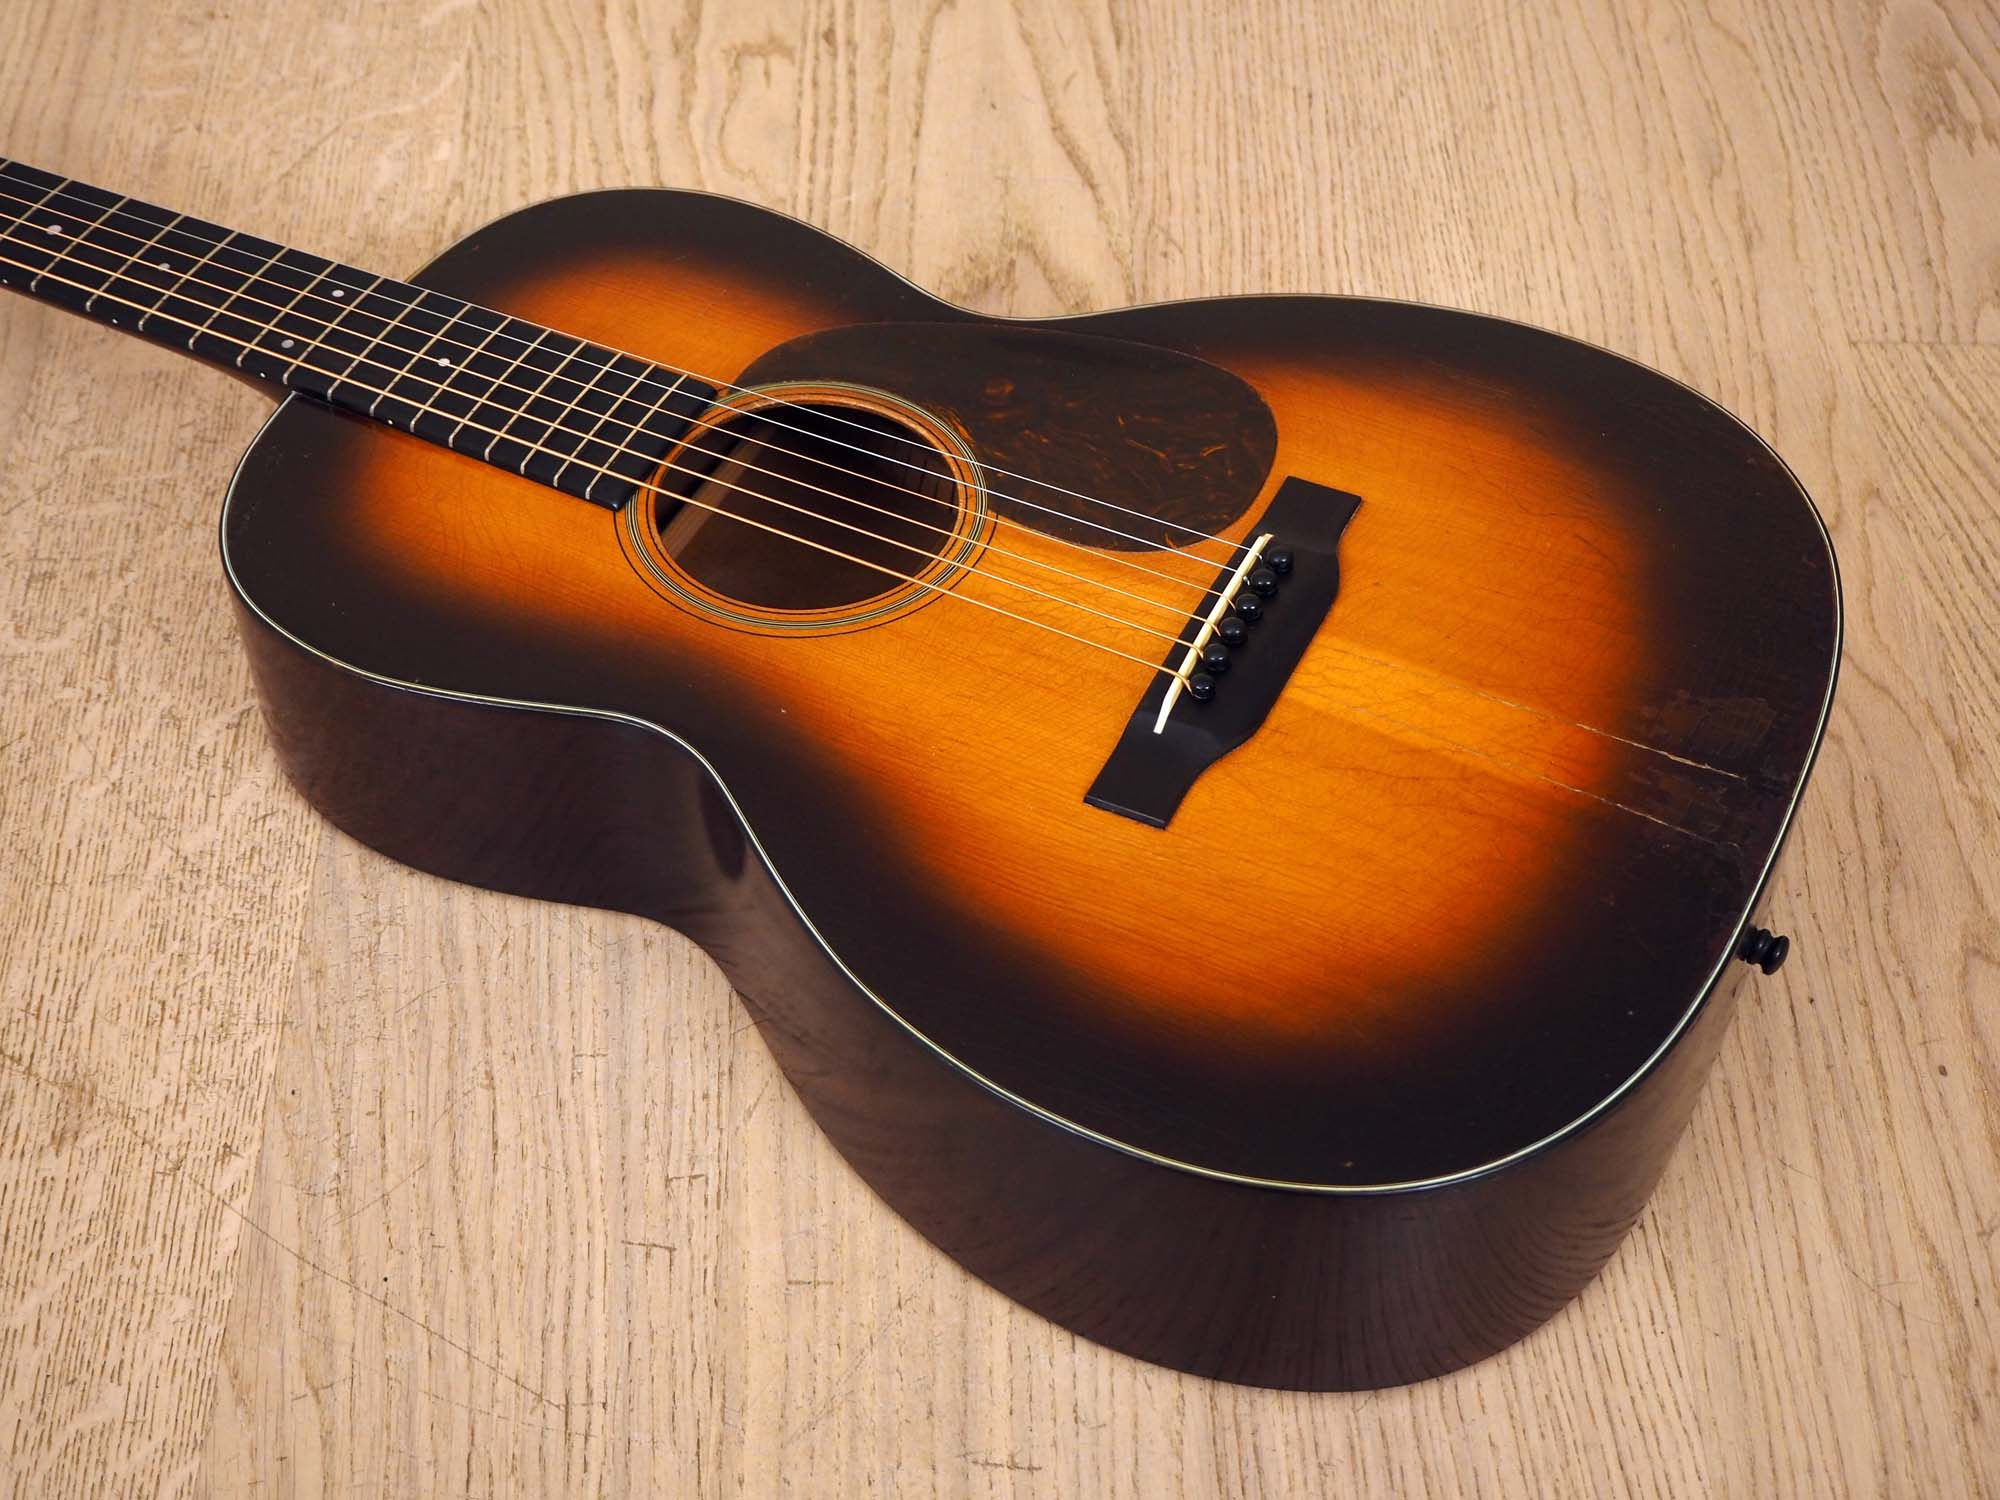 1937 Martin 00-18H Hawaiian Conversion Shaded Top Vintage Acoustic Guitar, Adirondack Spruce w/Case